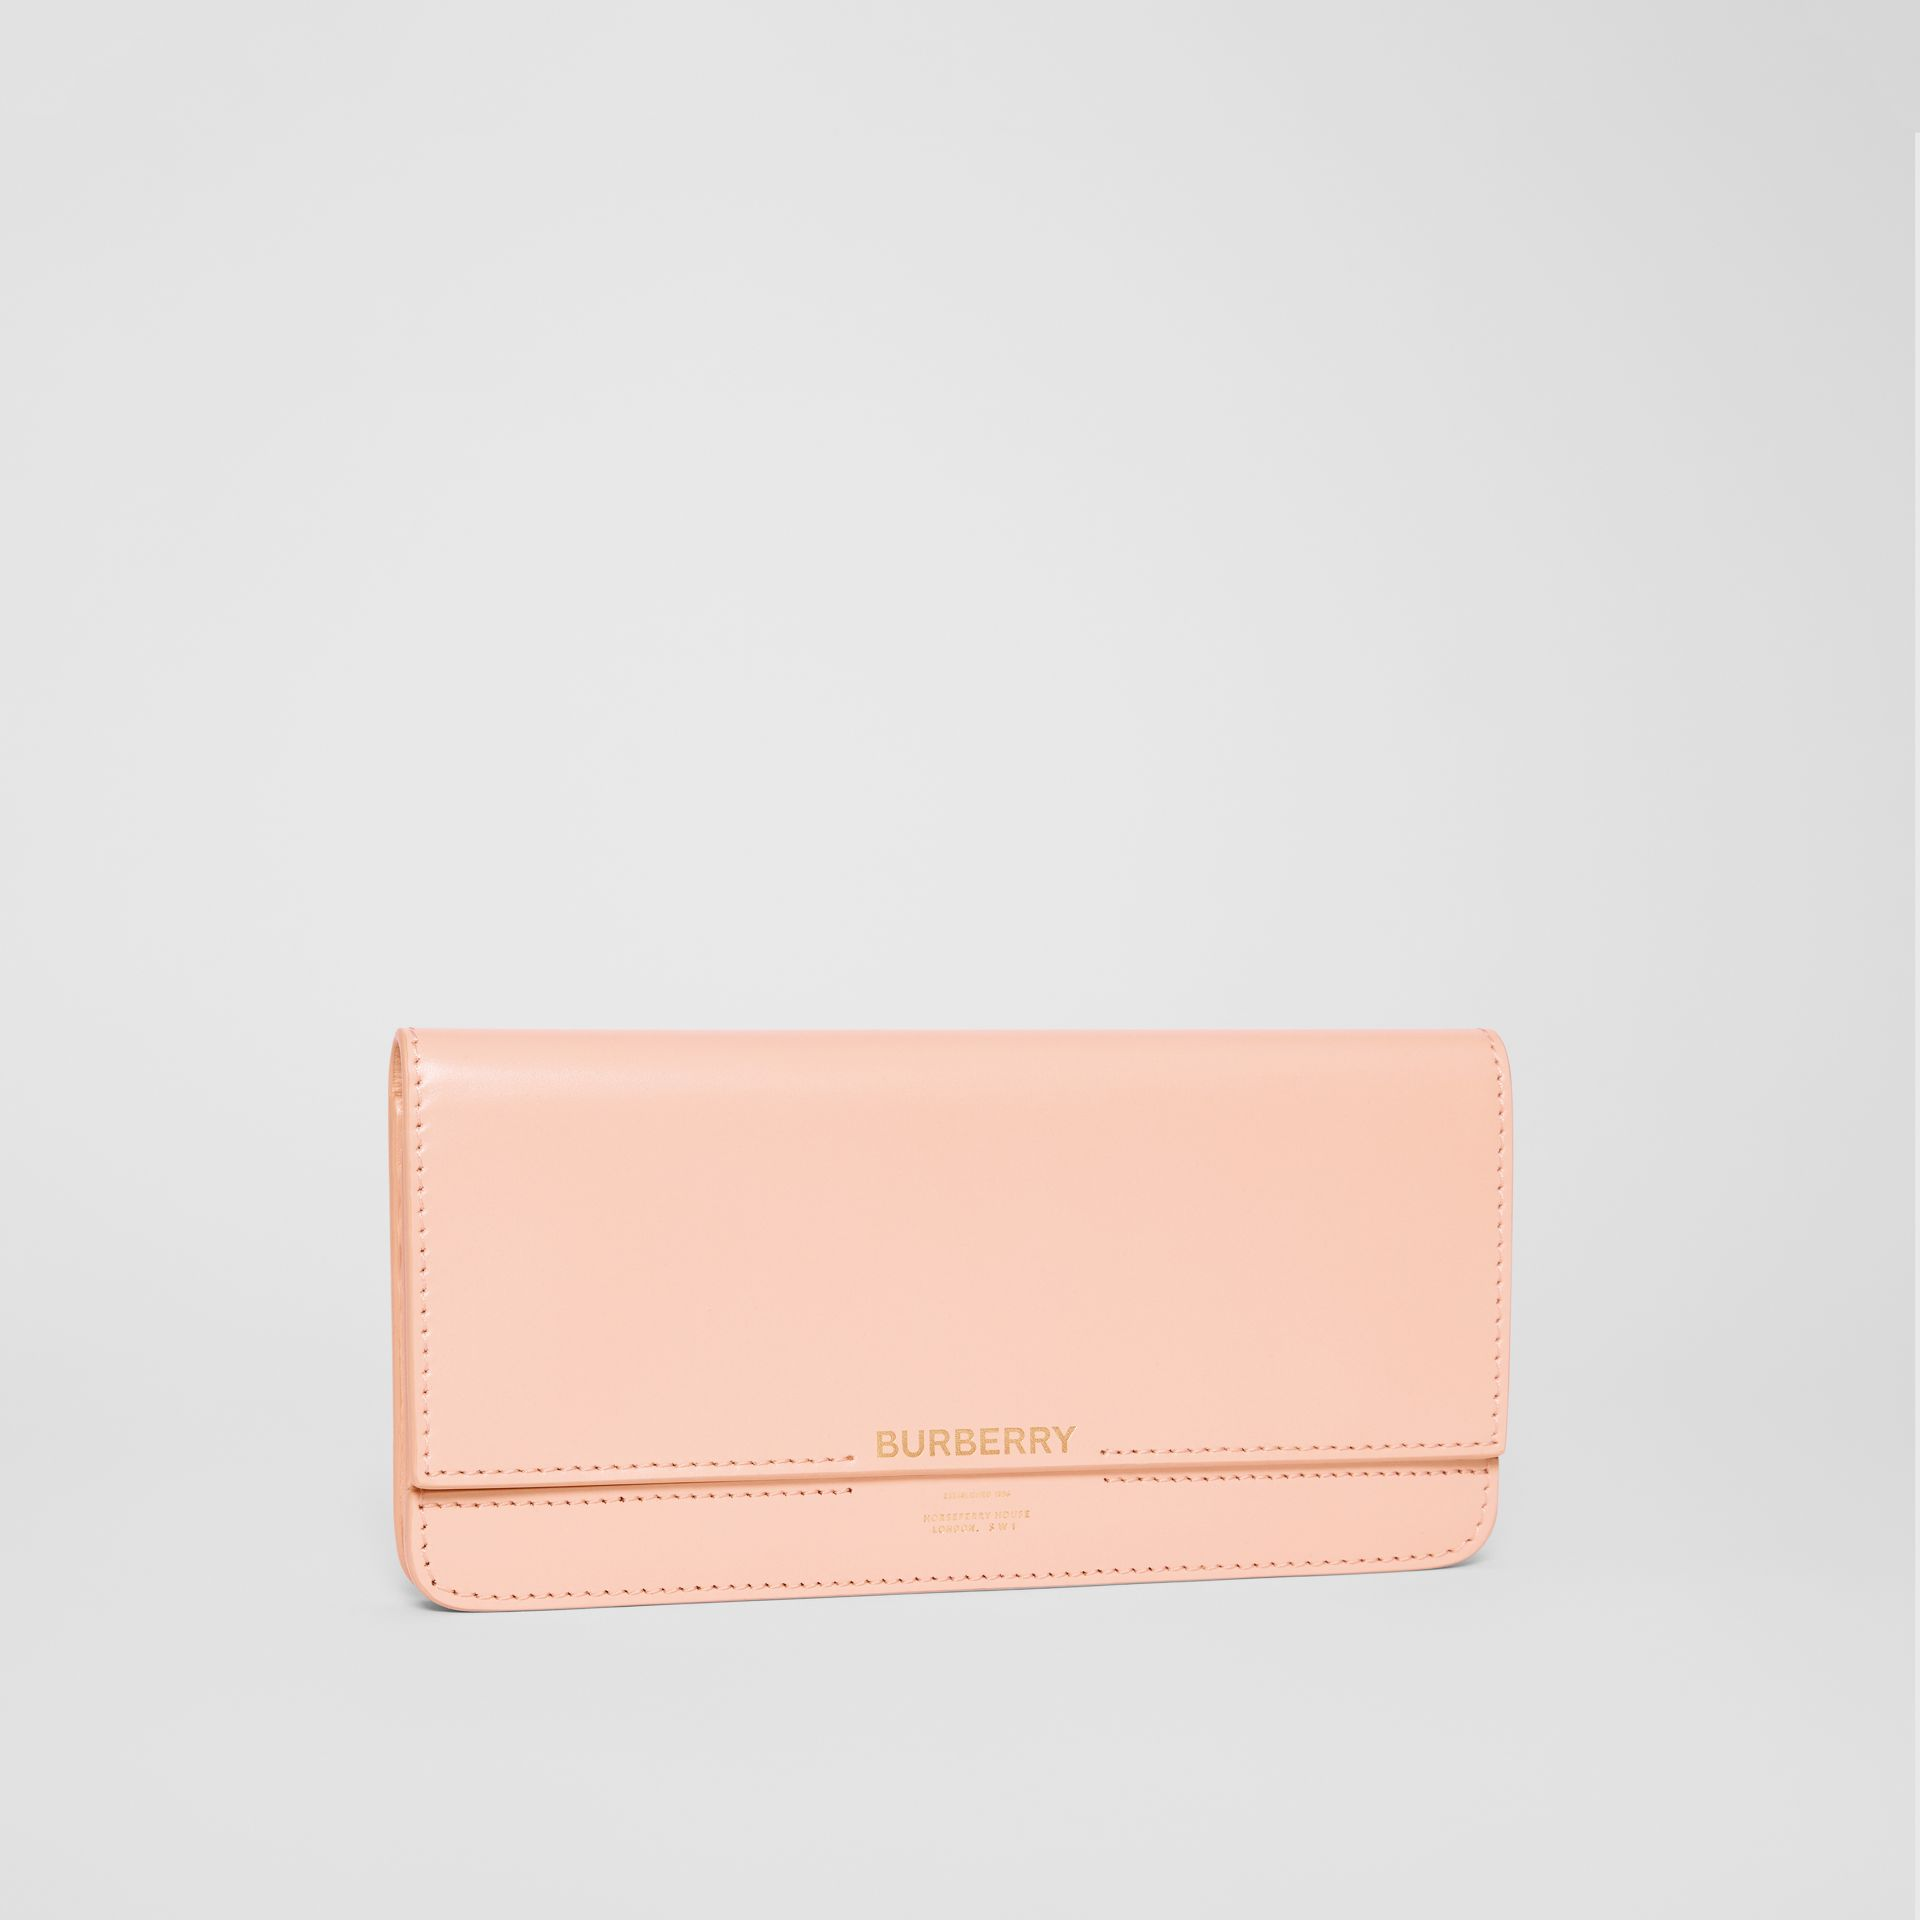 Horseferry Embossed Leather Continental Wallet in Blush Pink - Women | Burberry - gallery image 4